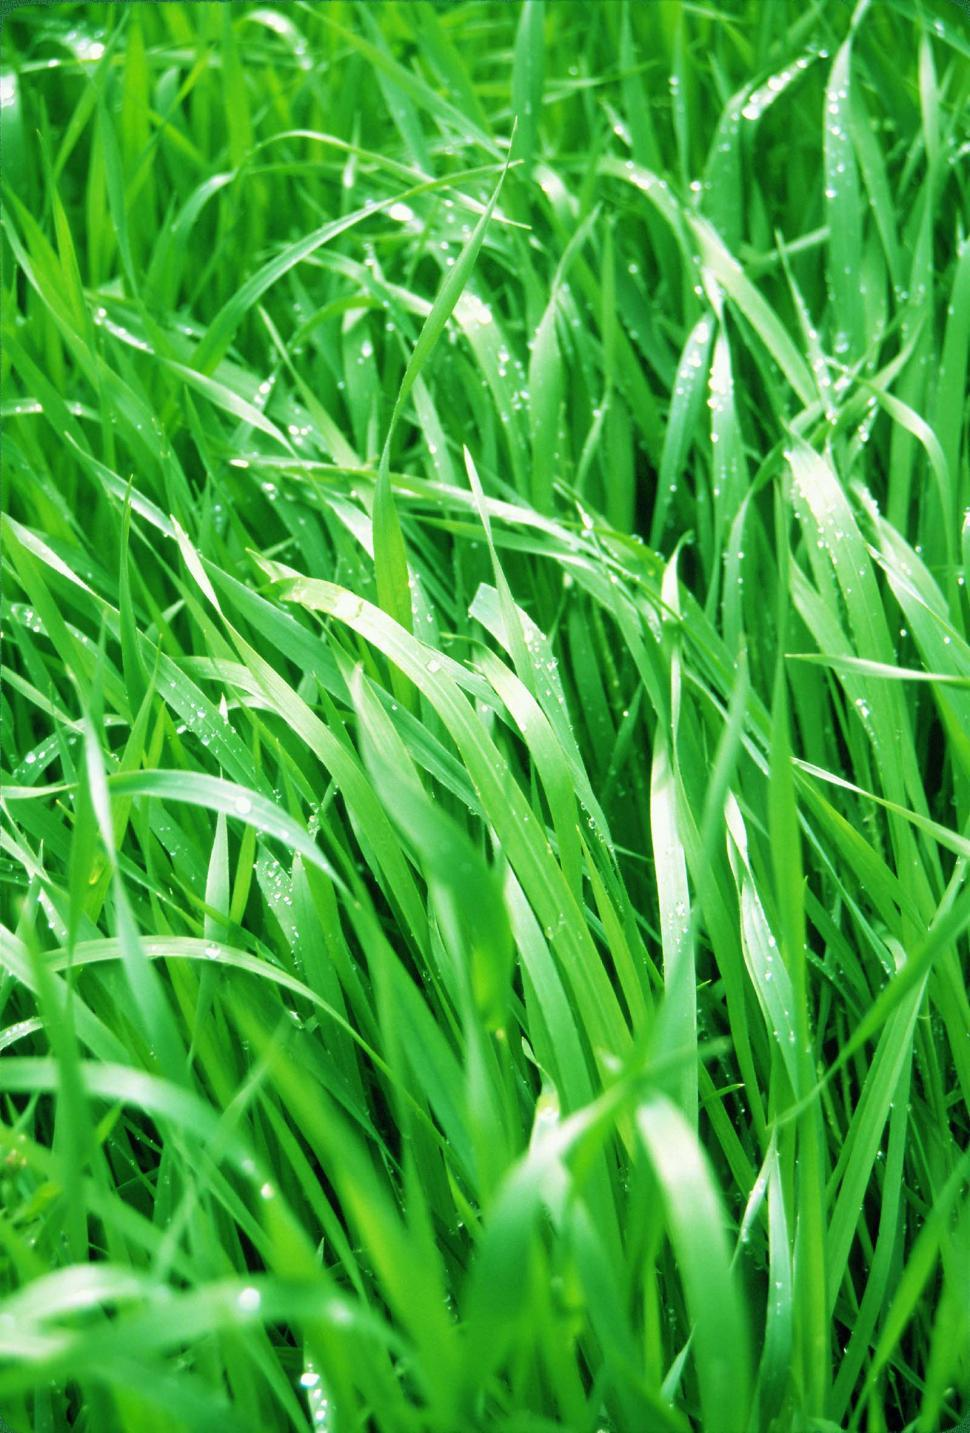 Download Free Stock HD Photo of Organic grass background Online